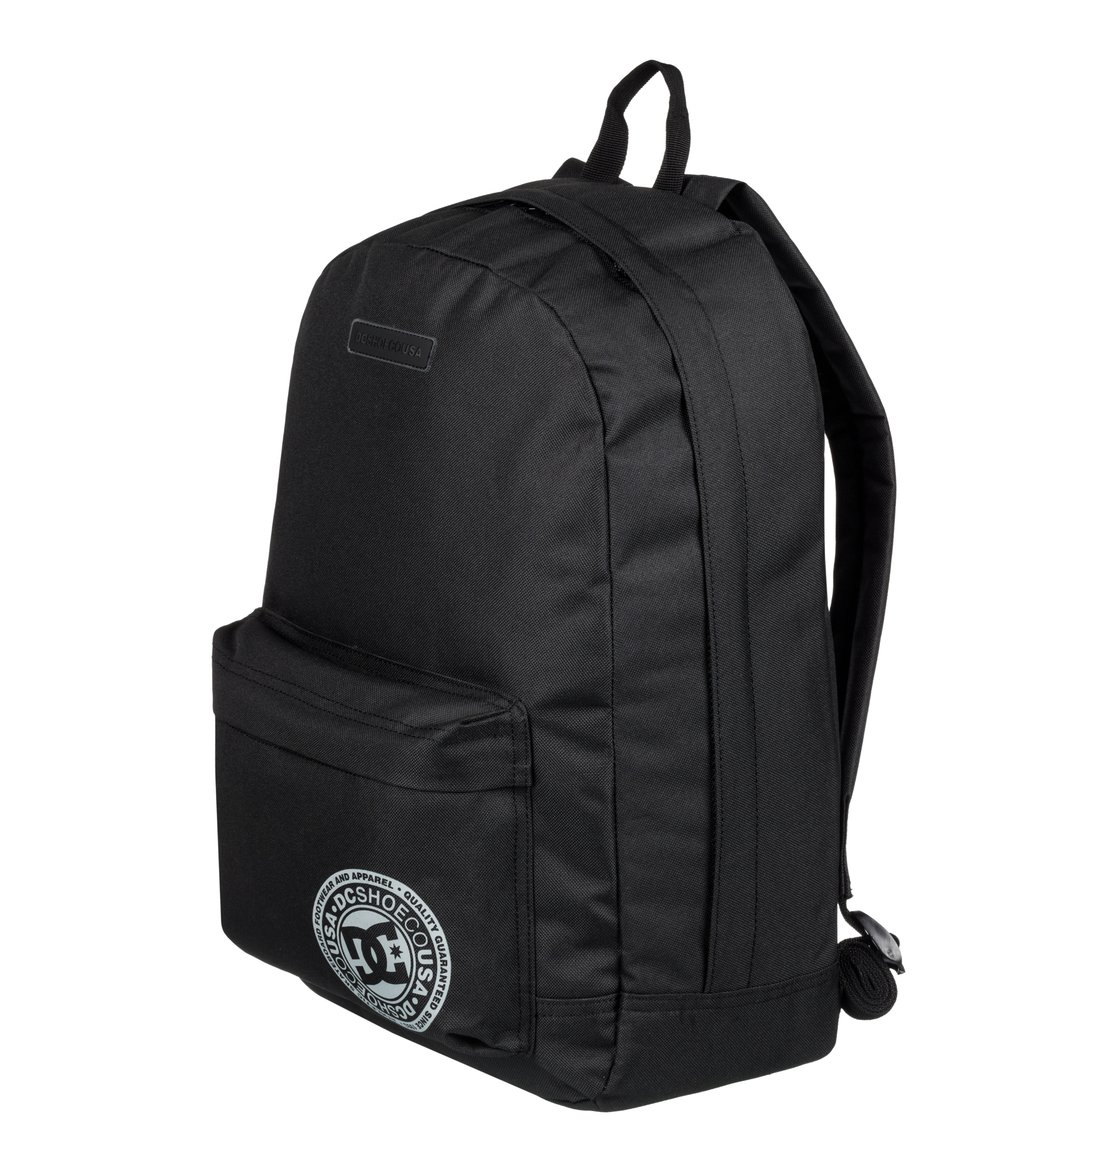 DC-Shoes-Backstack-18-5L-Sac-a-dos-taille-moyenne-pour-Homme-EDYBP03180 miniature 9